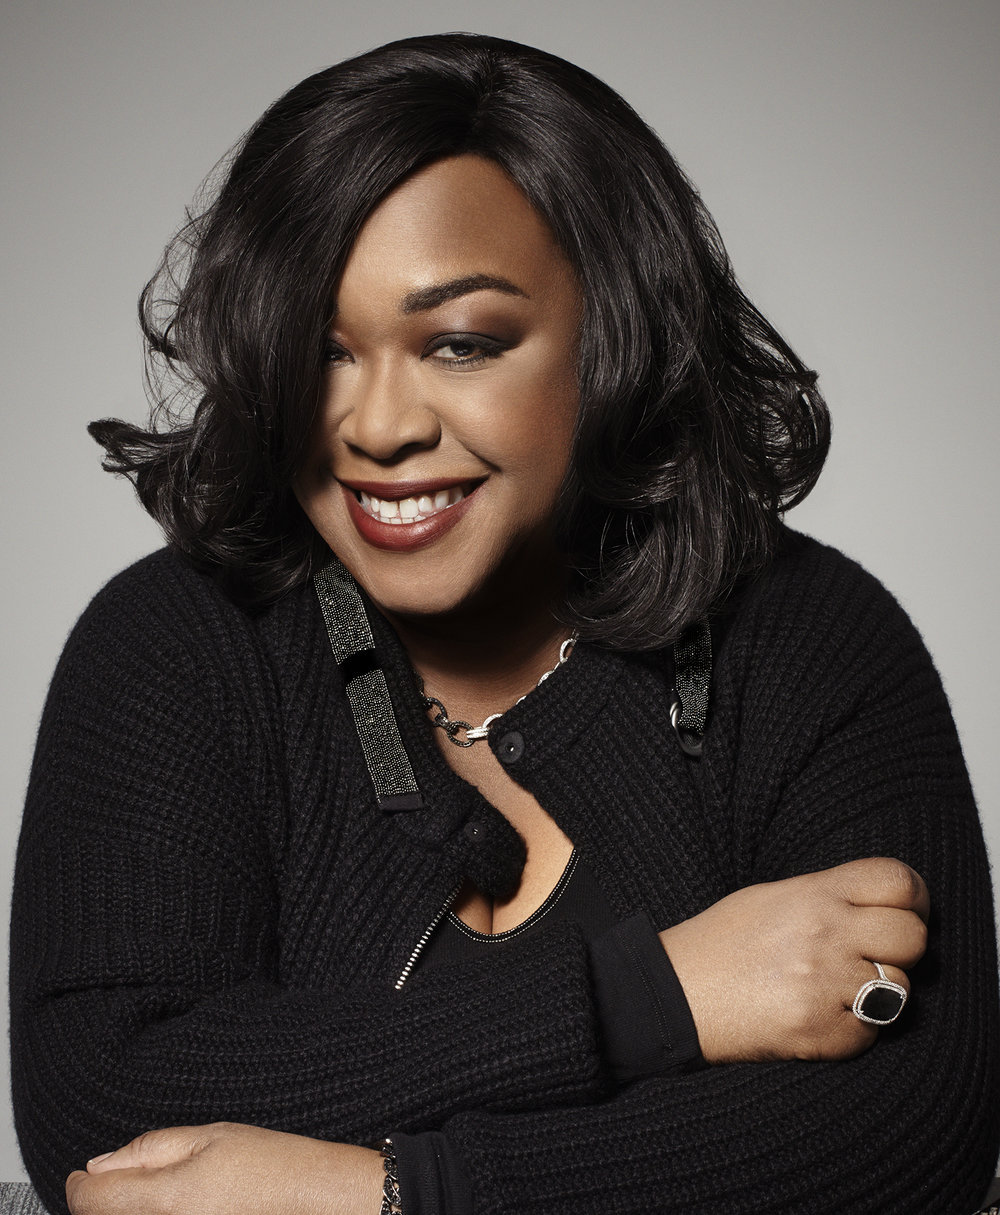 Shonda Rhimes - First woman to executive produce three hit shows